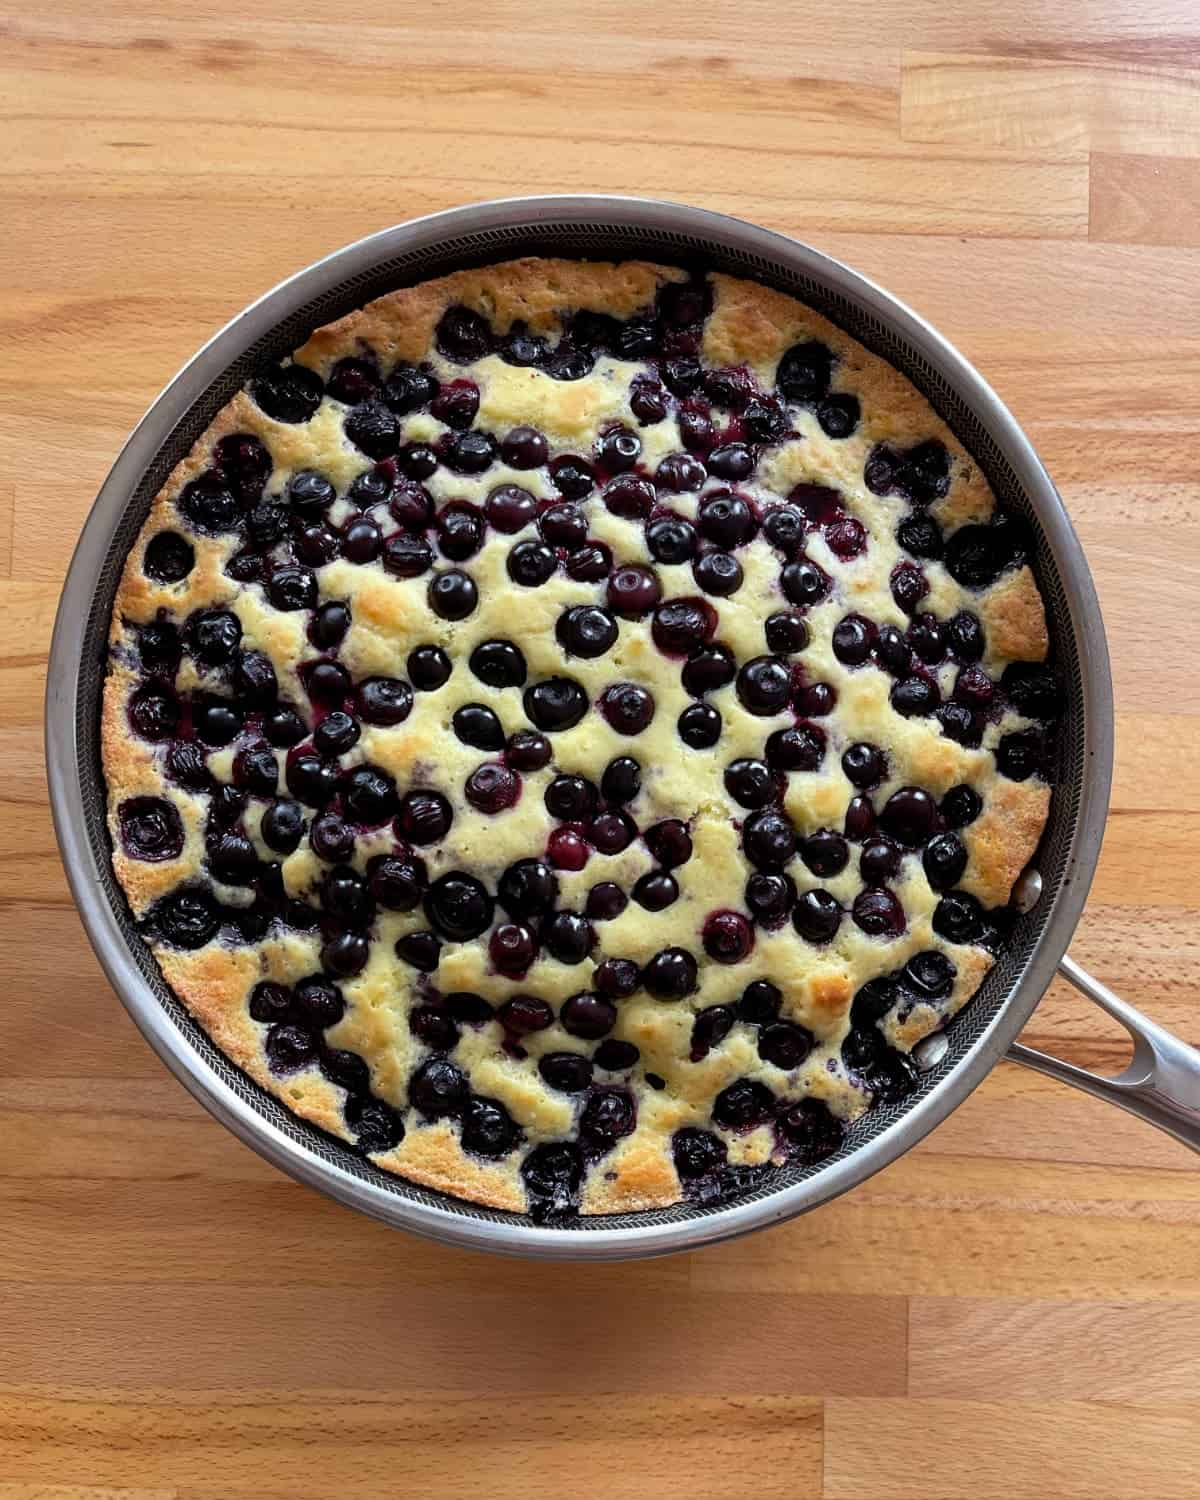 Oven-baked blueberry skillet pancake on wood table.